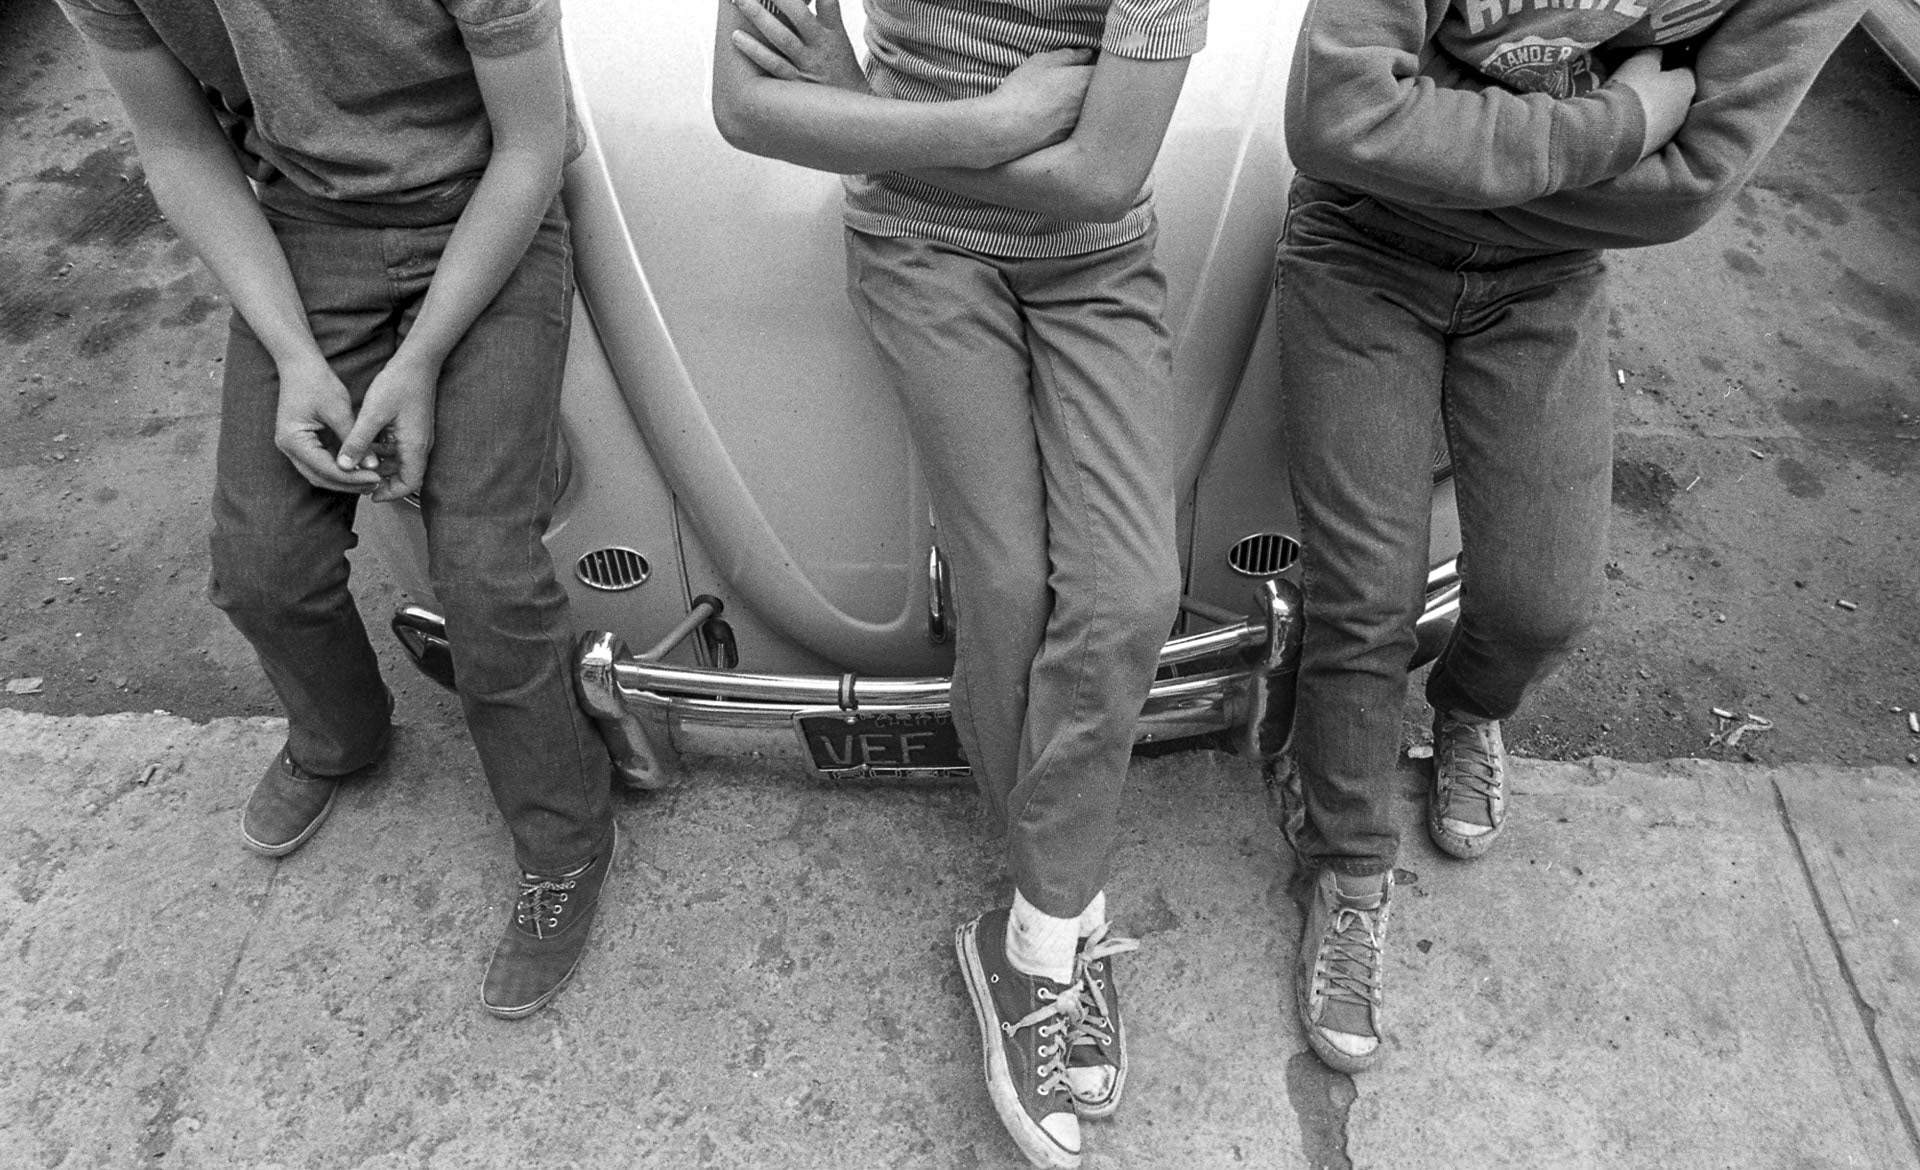 Boy's Sneakers and VW Bug, Aspen, CO